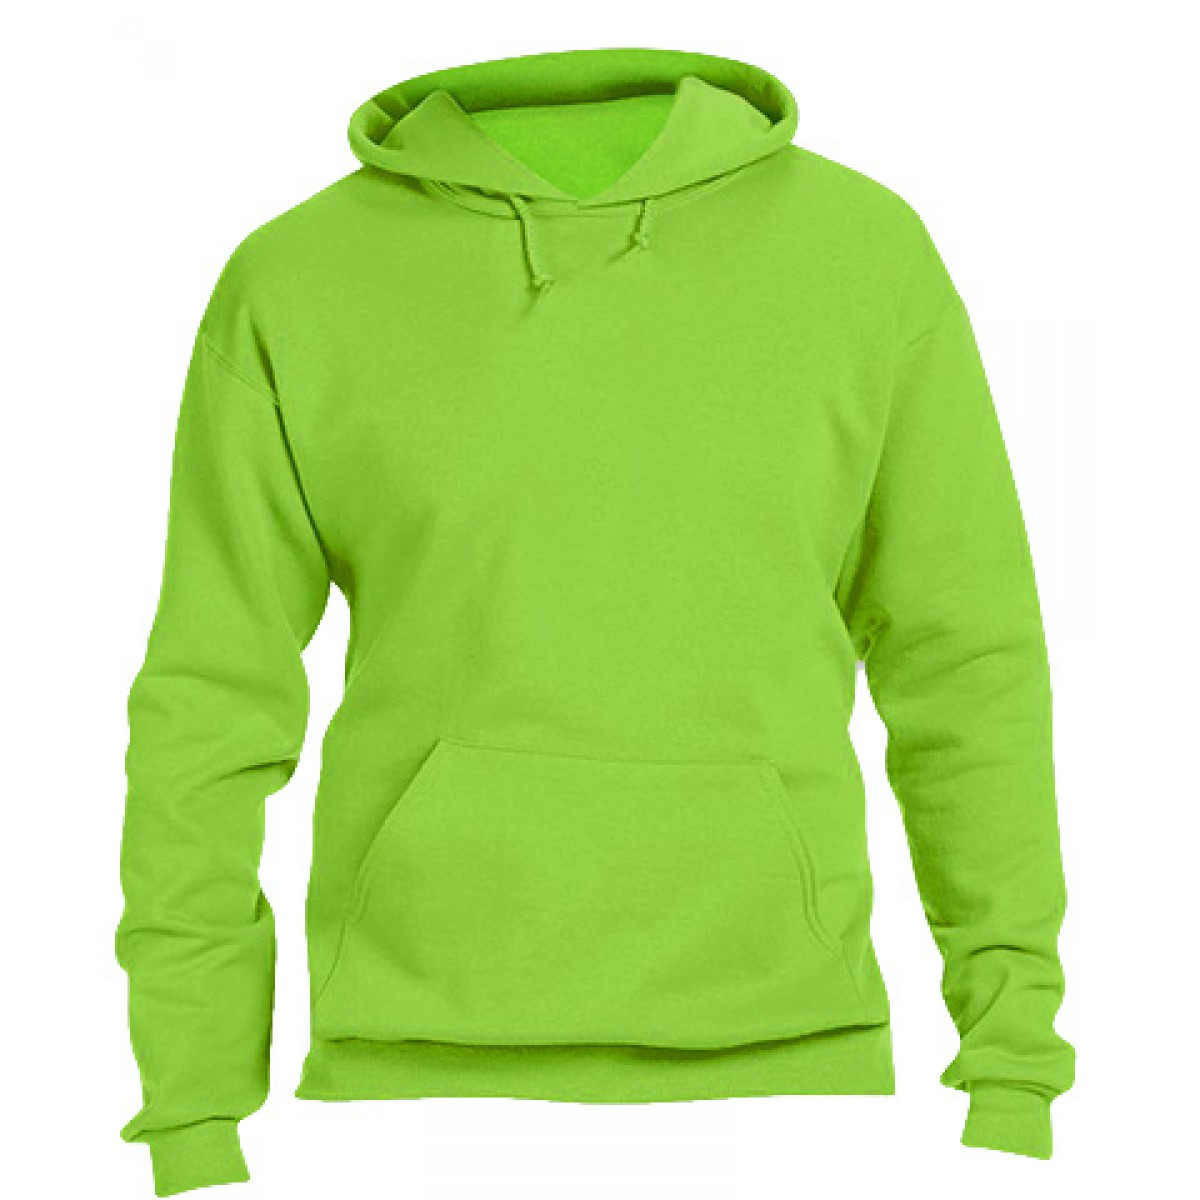 Hooded Sweatshirt 50/50 Heavy Blend -Neon Green-XL